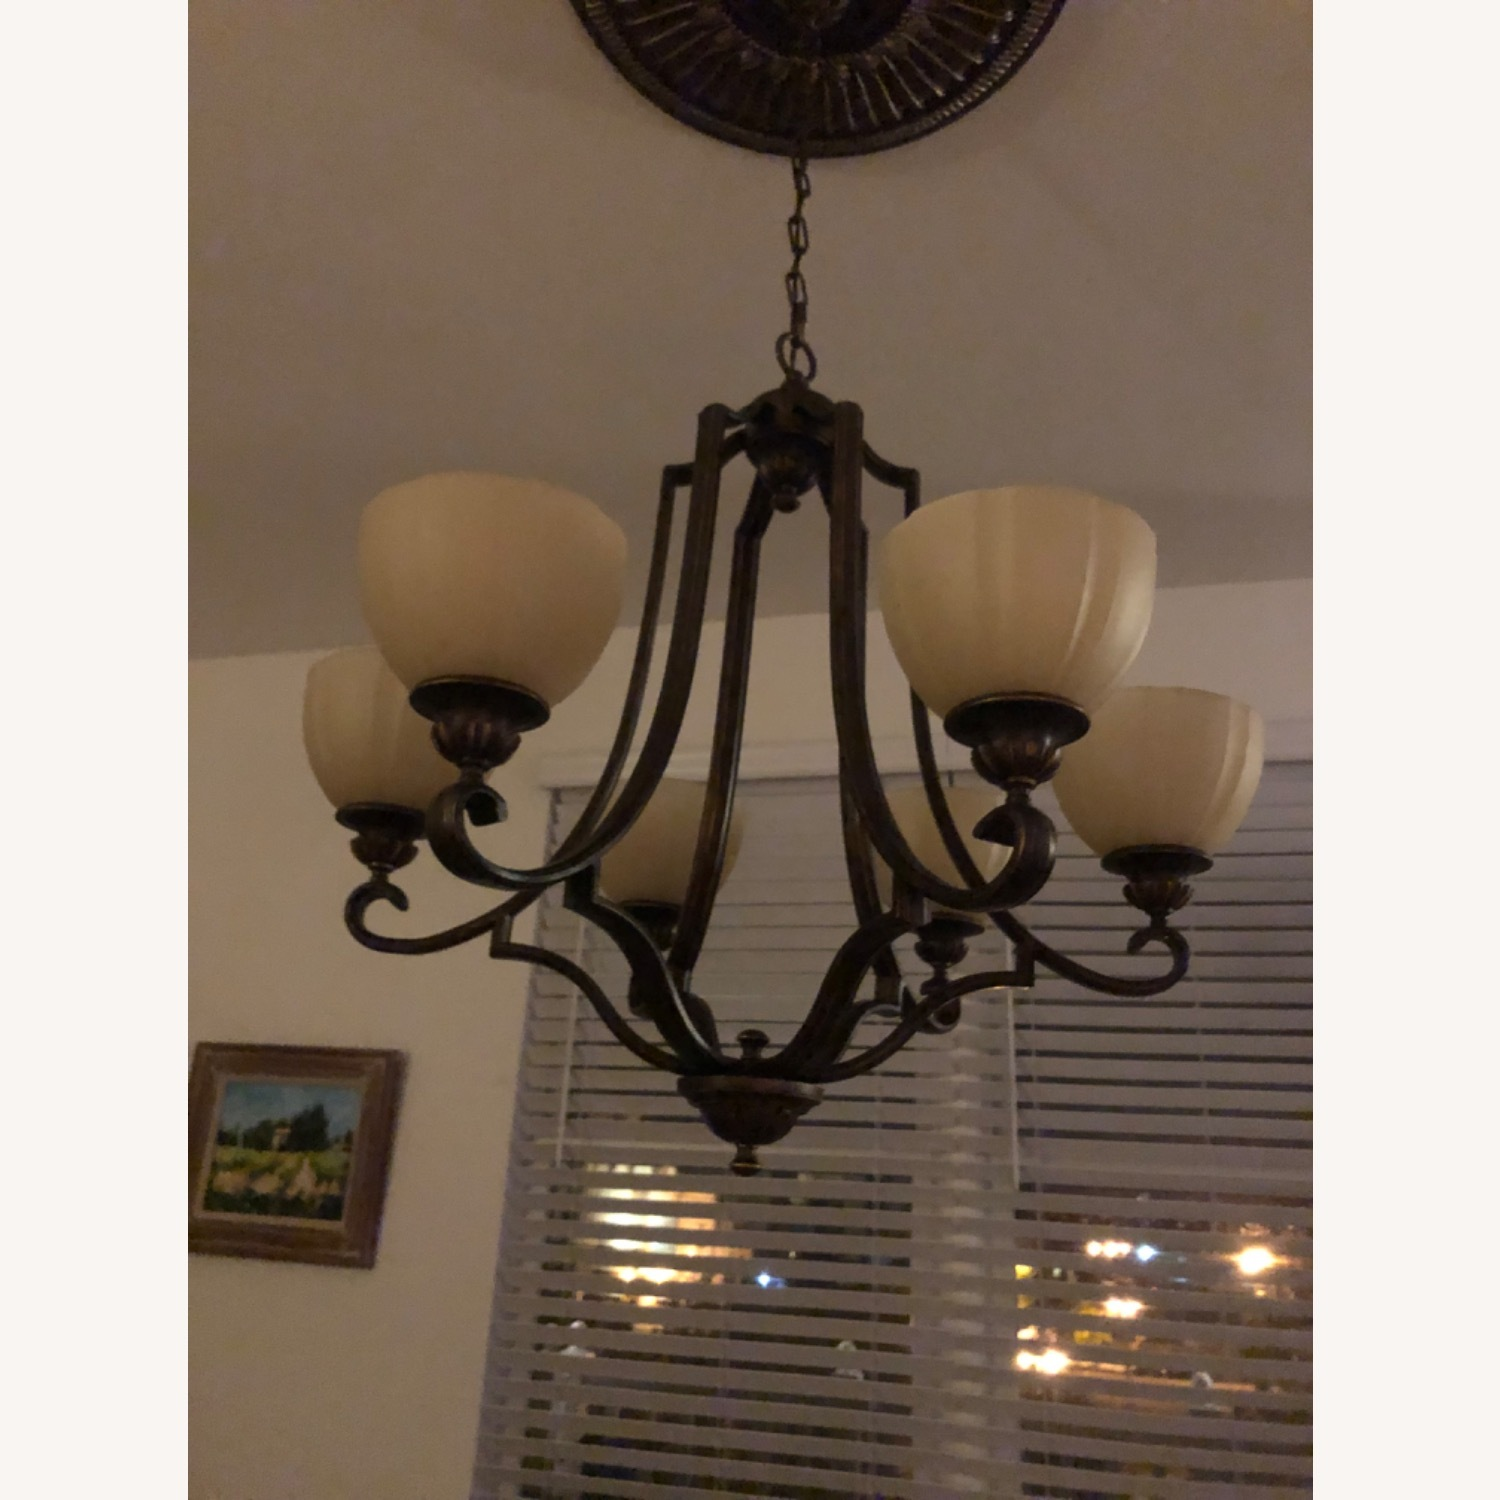 Feiss Chandelier & Lateral Ceiling Lighting - image-3